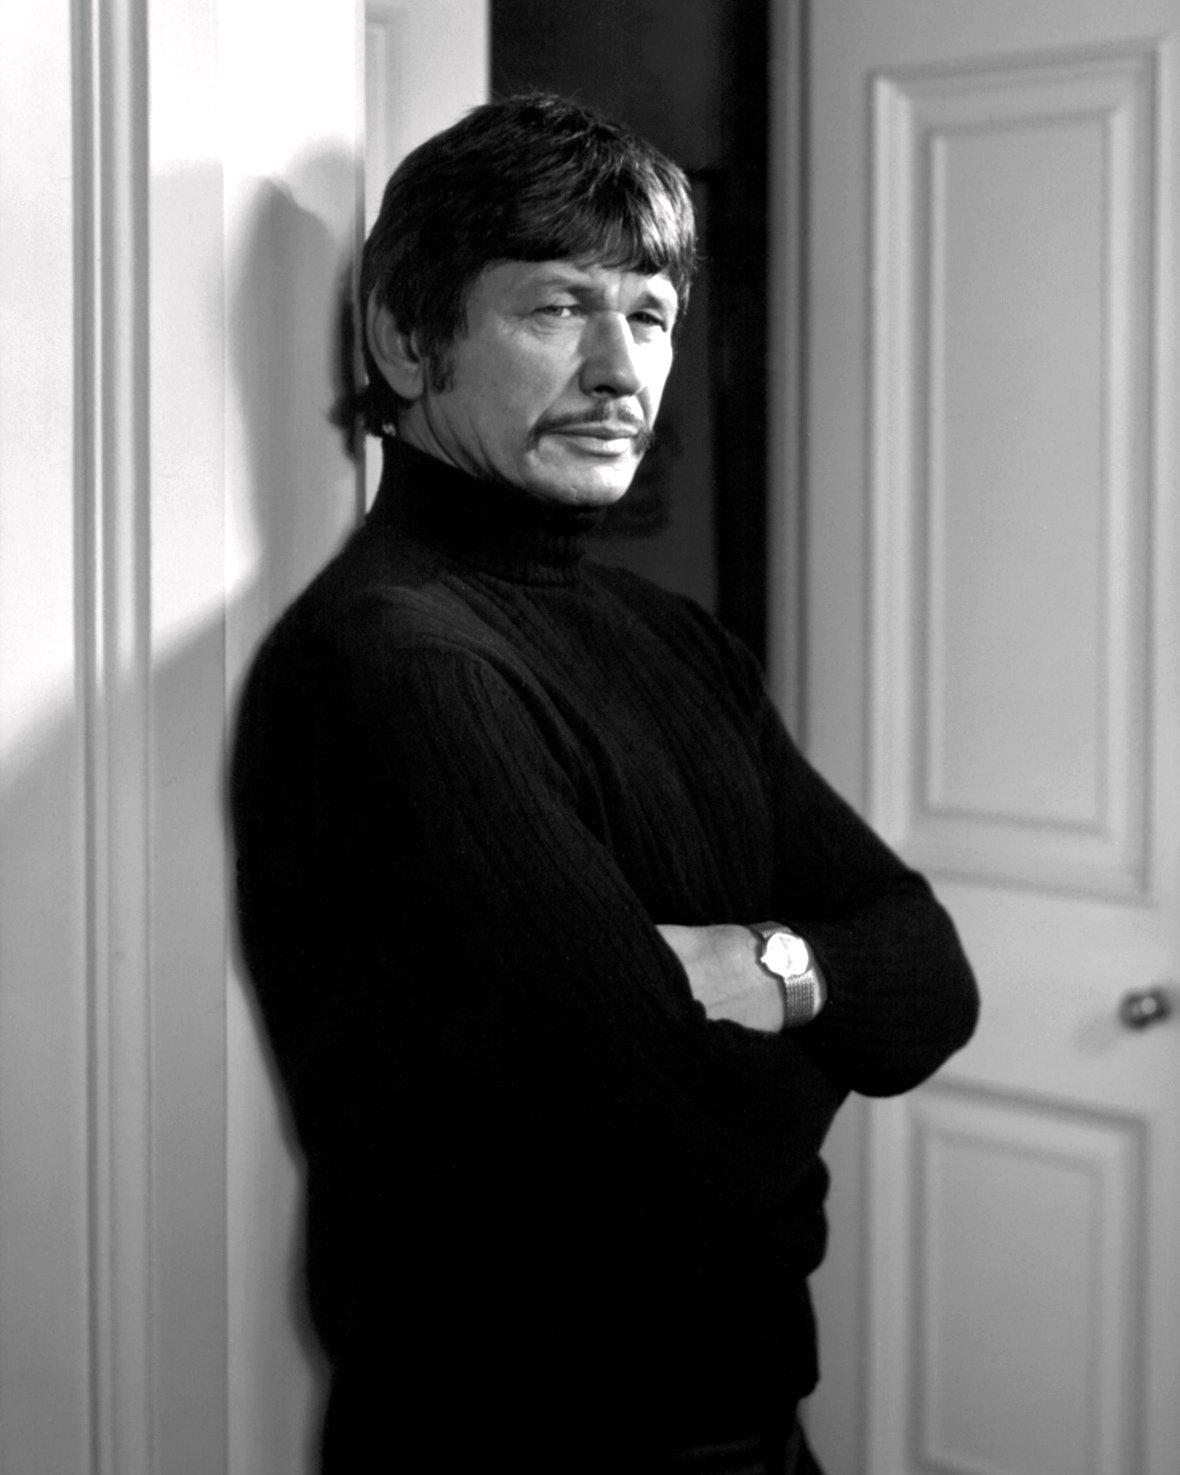 CHARLES BRONSON IN THE FILM 'THE MECHANIC' - 8X10 PUBLICITY PHOTO (ZY-217)